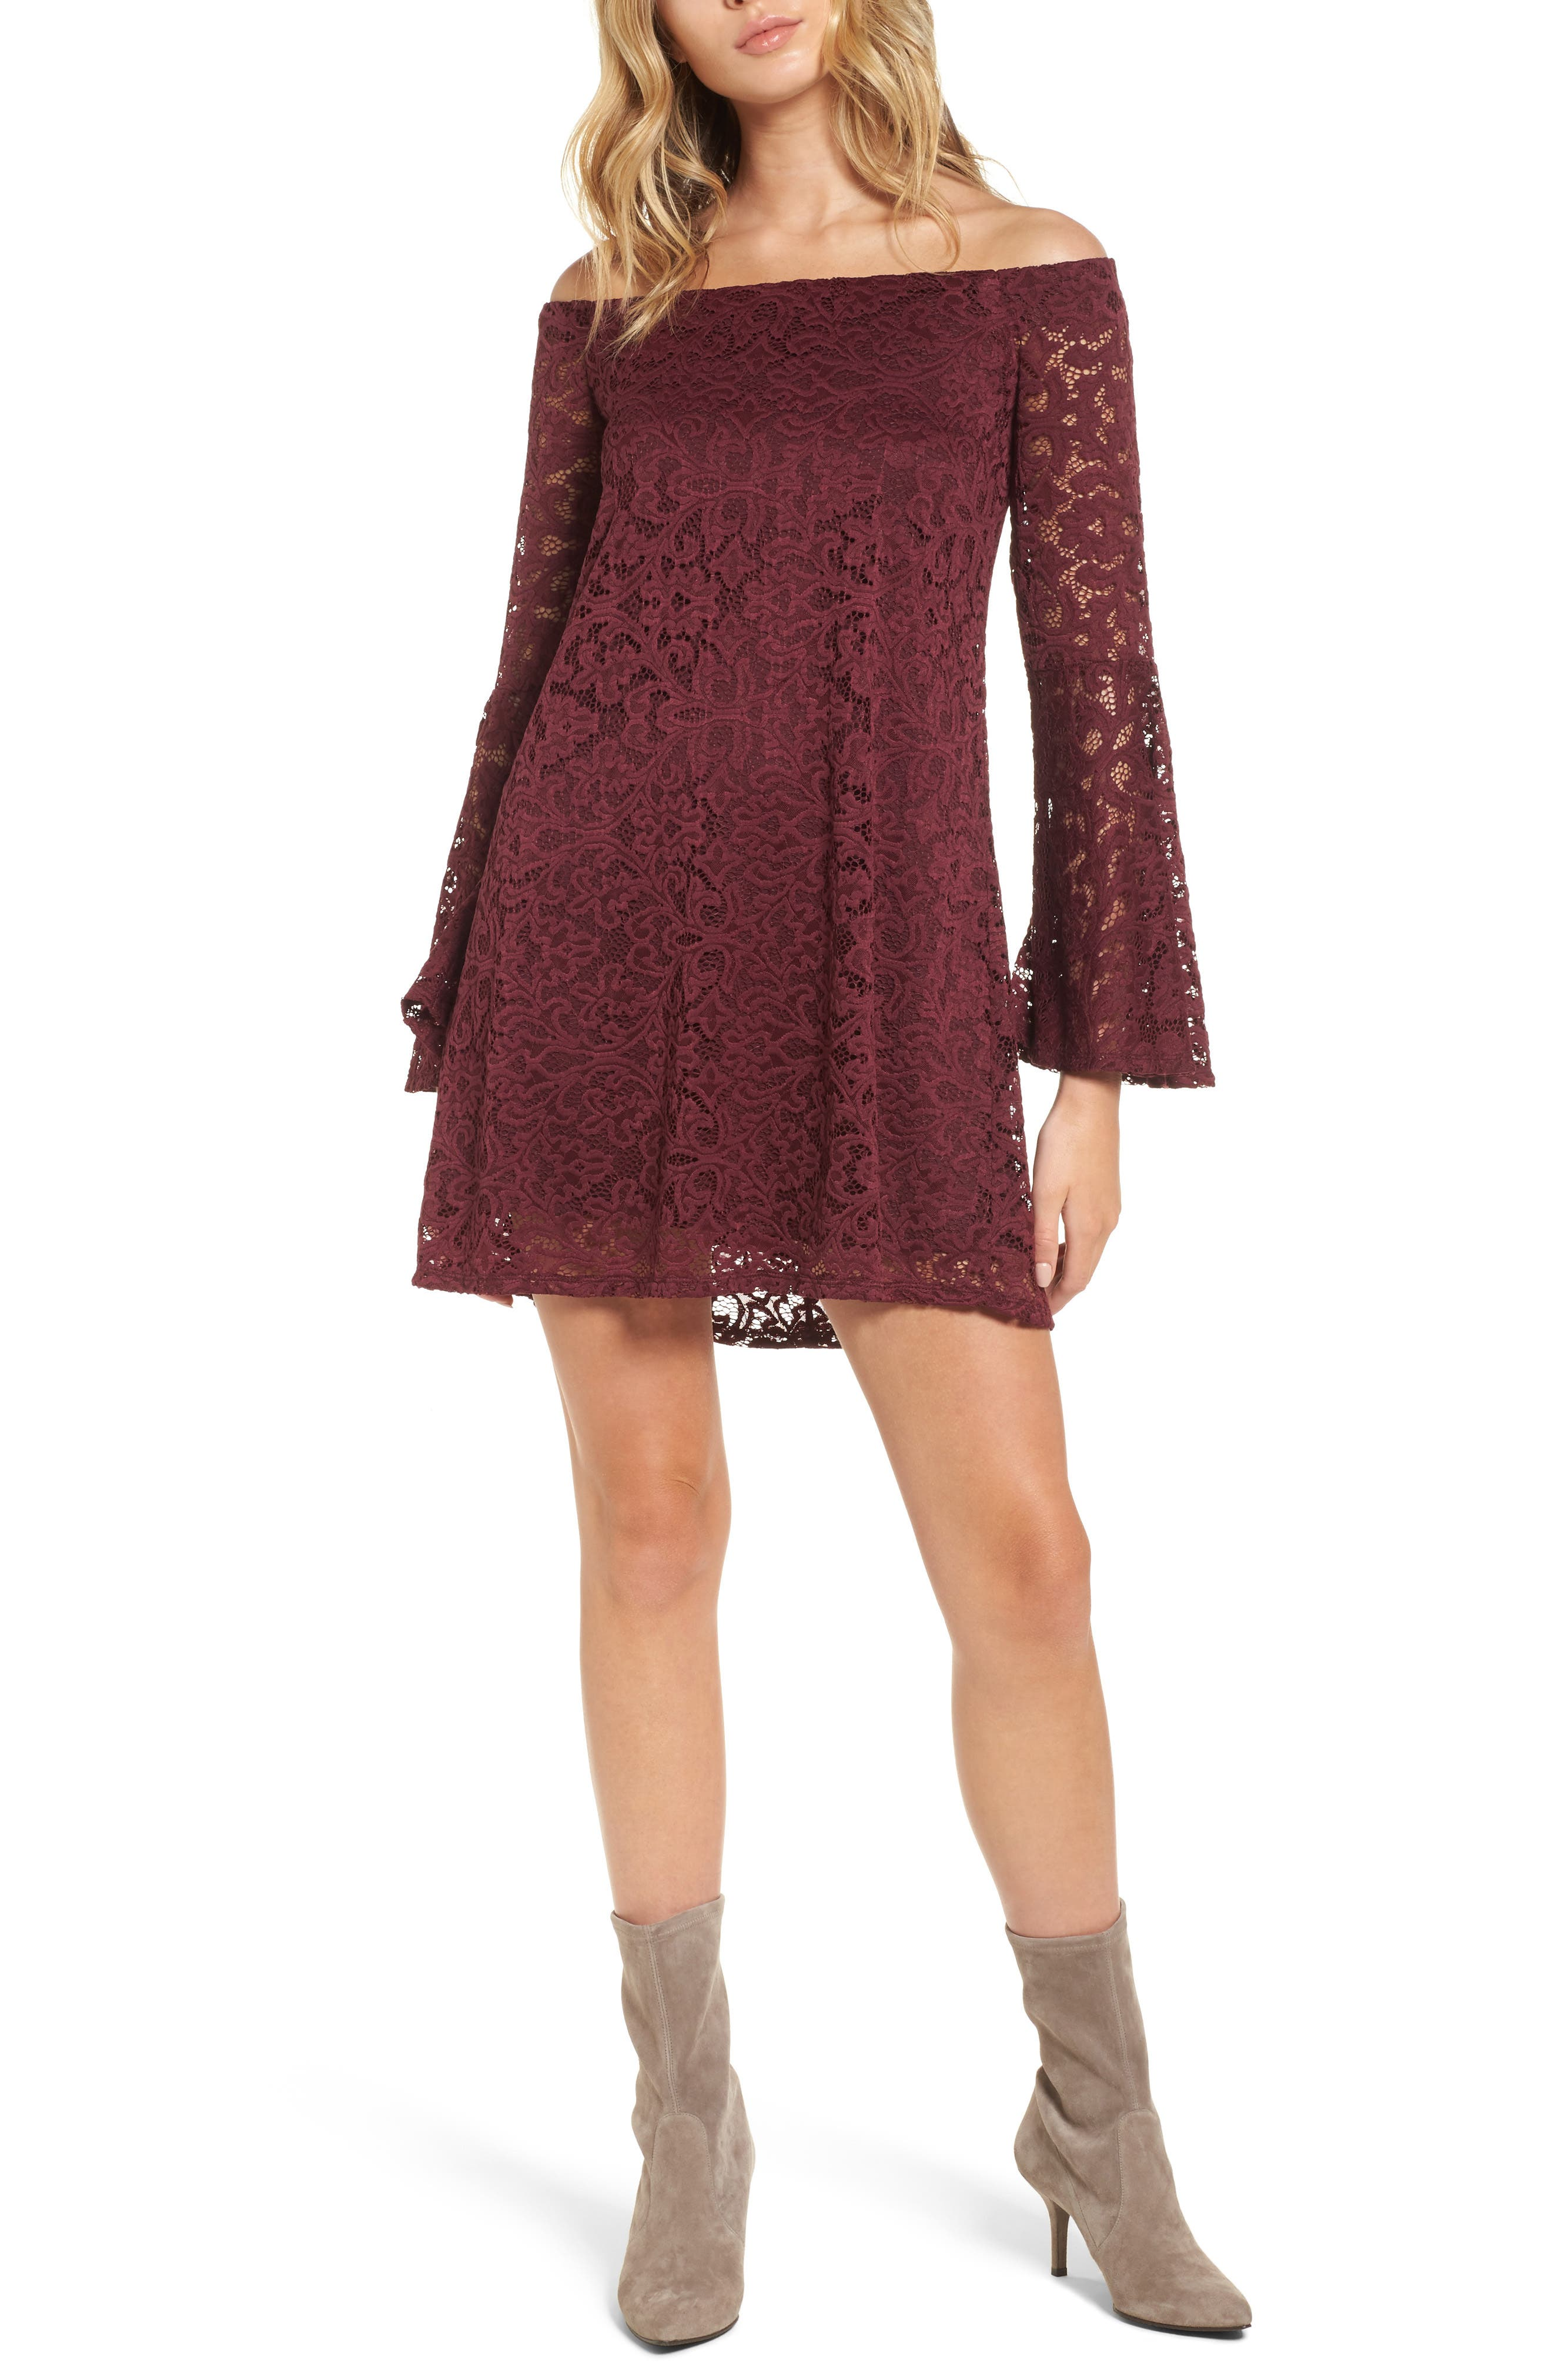 Alternate Image 1 Selected - As U Wish Lace Bell Sleeve Off the Shoulder Dress